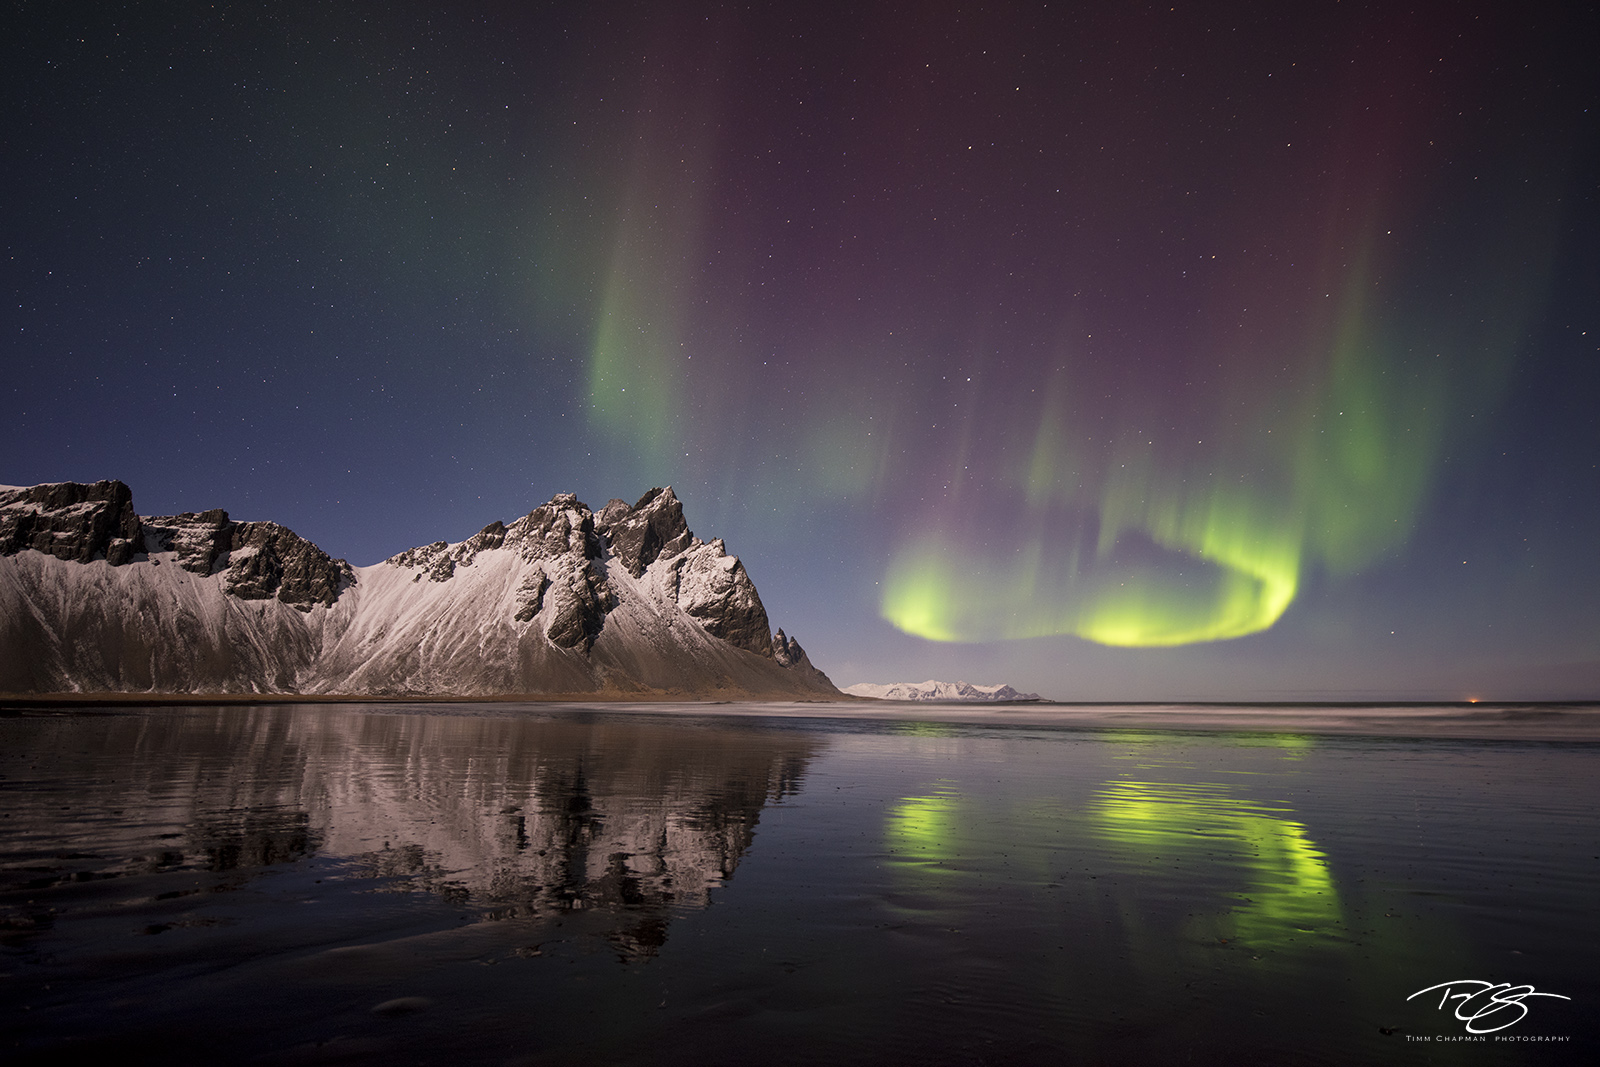 Iceland, aurora, borealis, green, Vestrahorn, stars, northern lights, spirit, coronal mass ejection, solar flare, energy, nordic, arctic, stokksnes, vesturhorn, reflection, mountains, photo